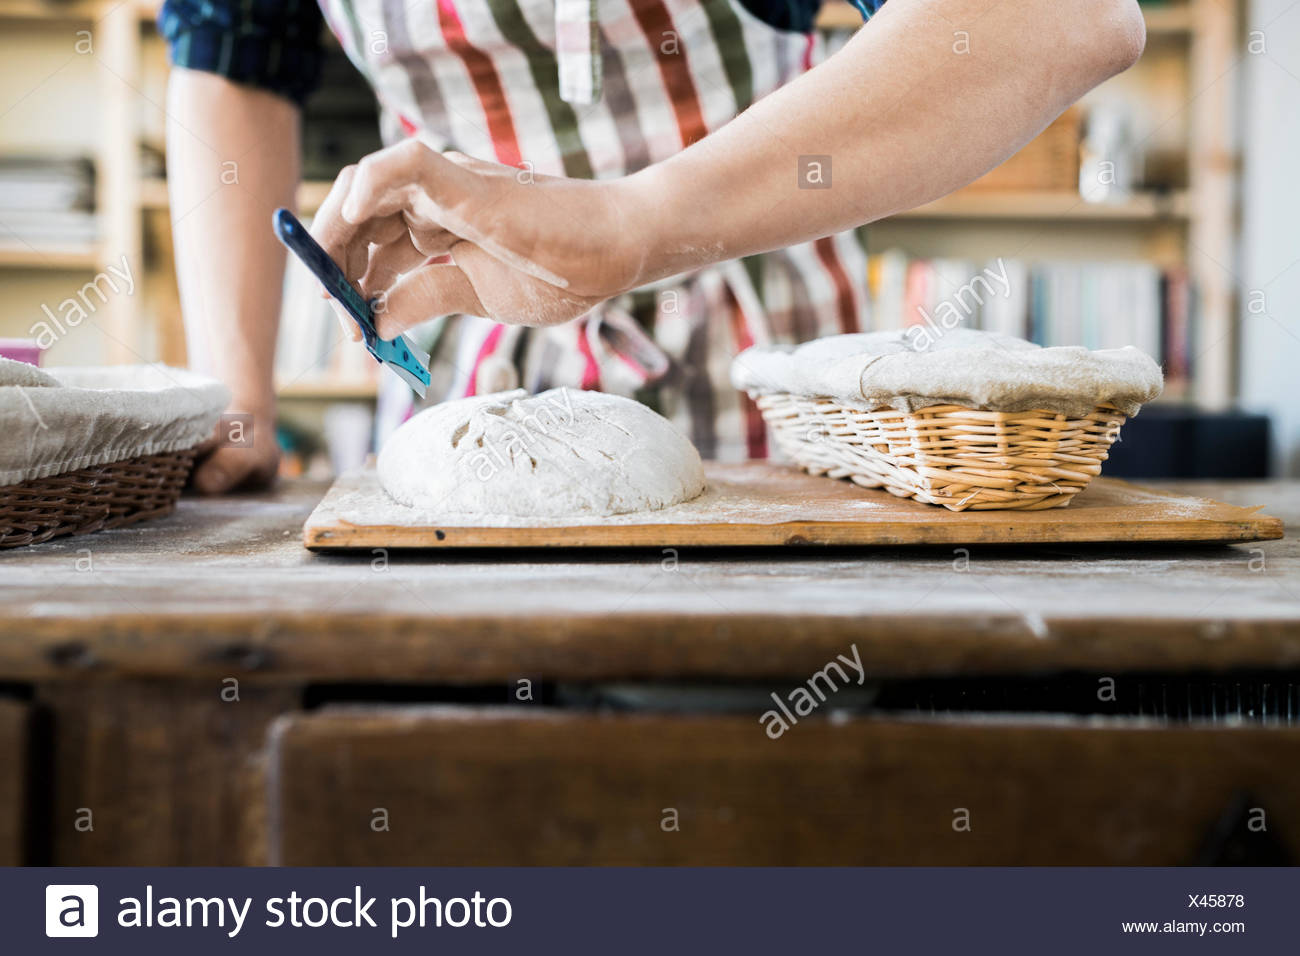 Midsection of baker making design on dough at table in bakery - Stock Image